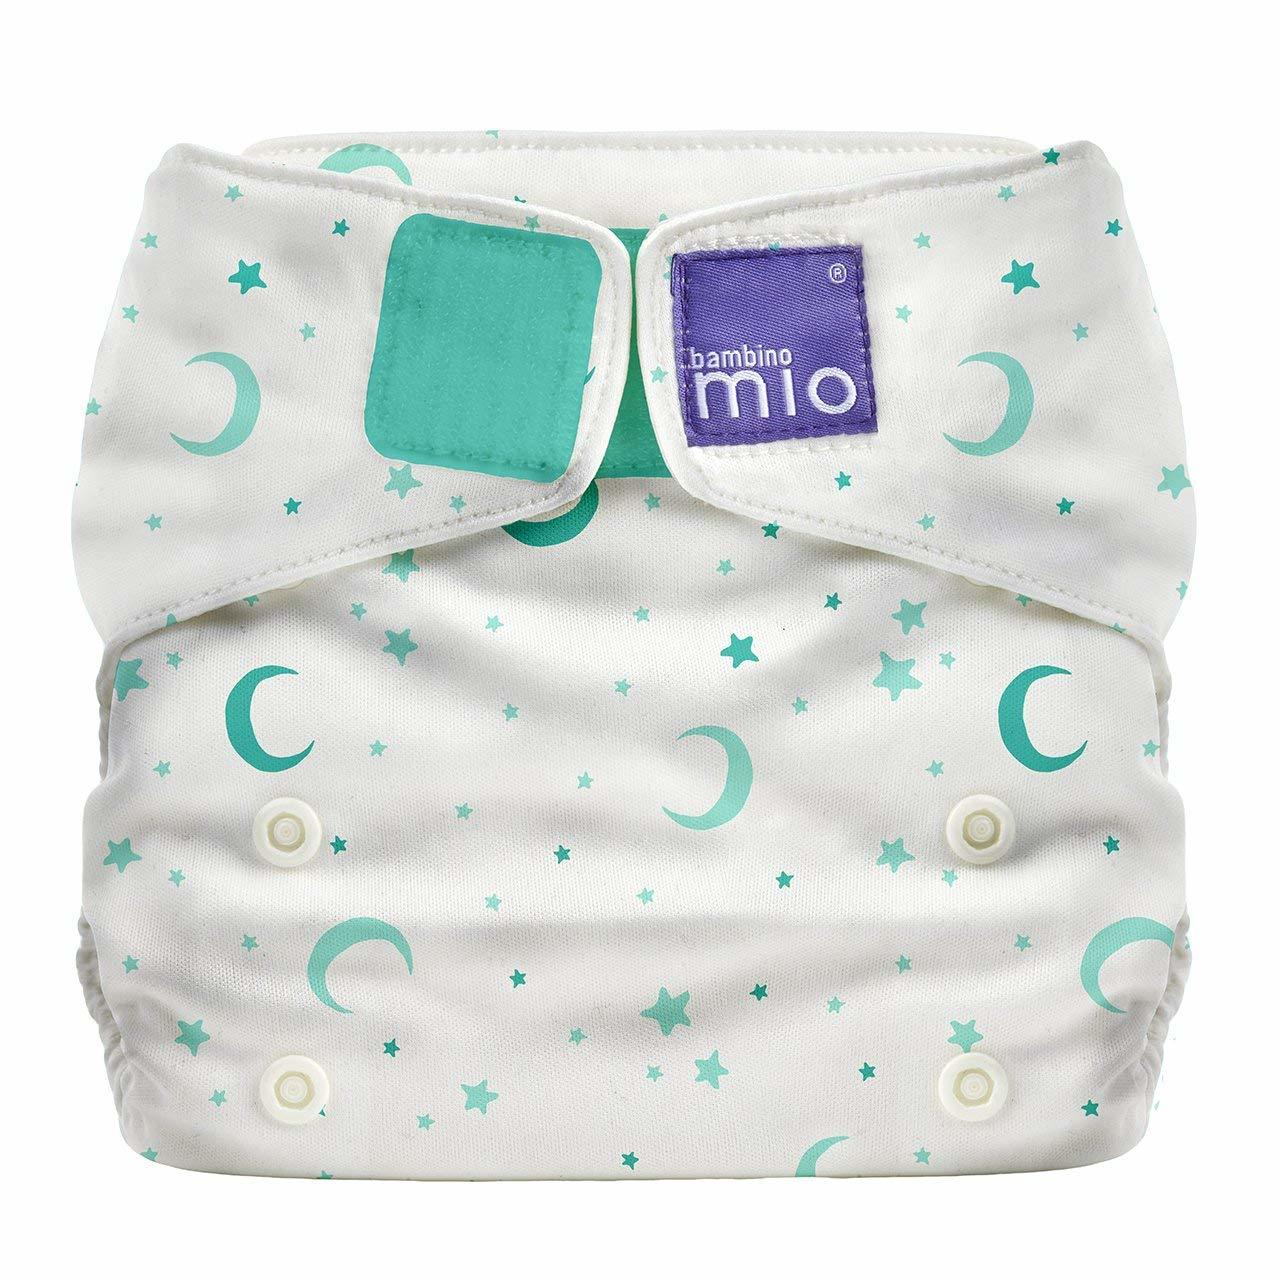 Bambino Mio: Miosolo All-in-One Nappy - Sweet Dreams image